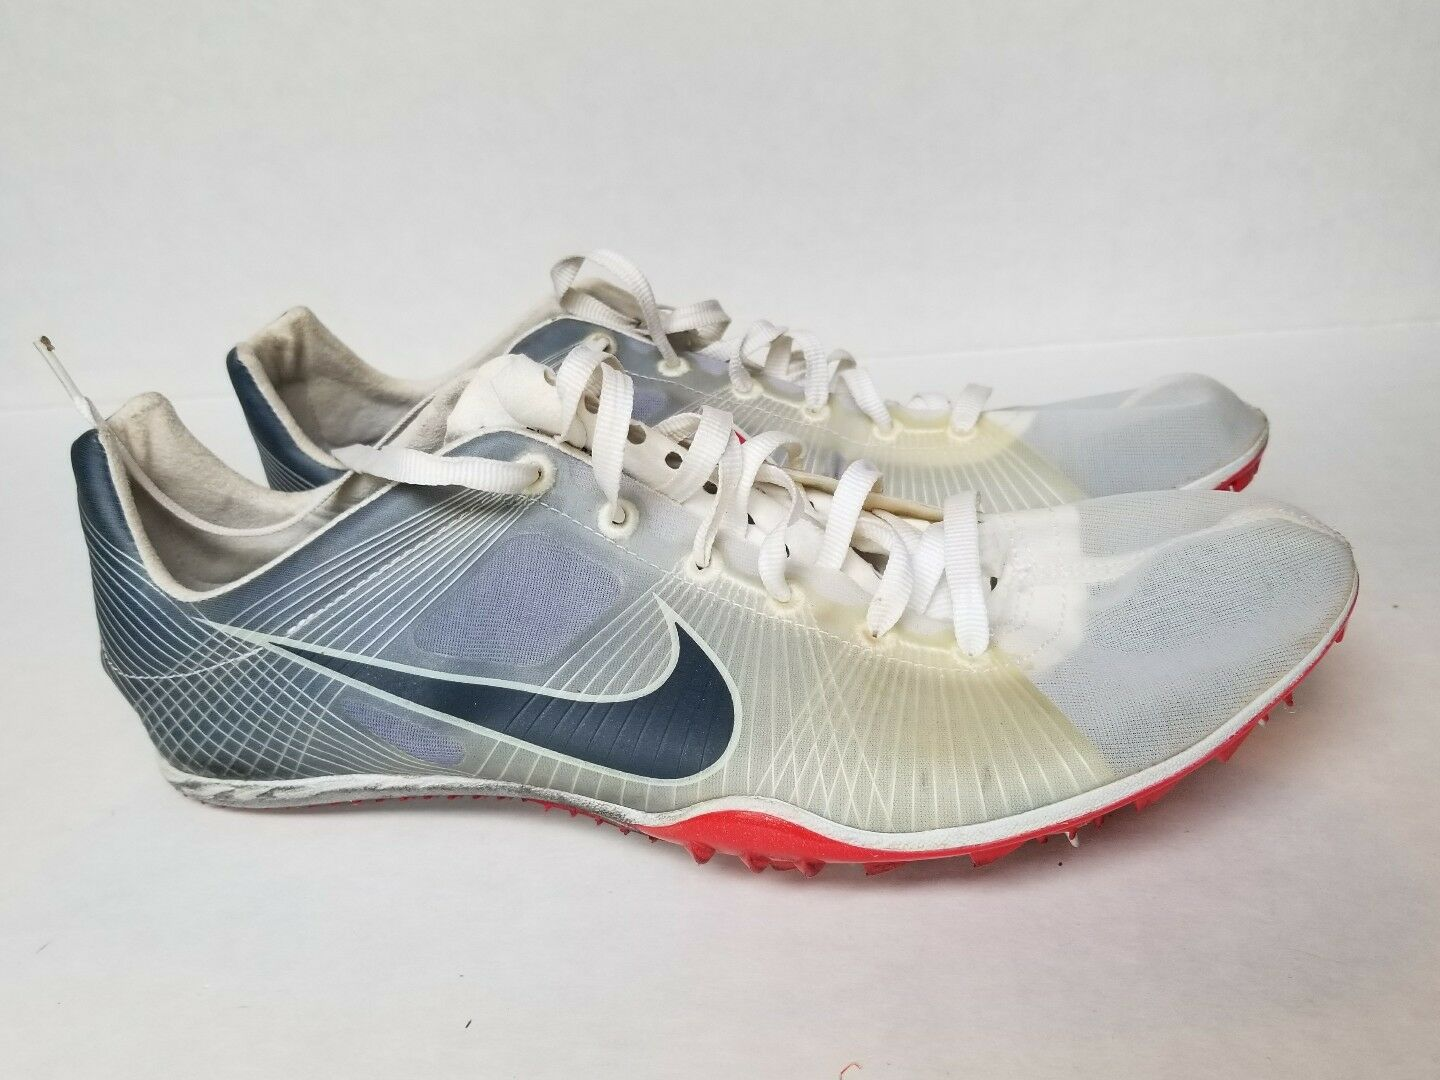 Nike Zoom Vics 1 sz 9 used